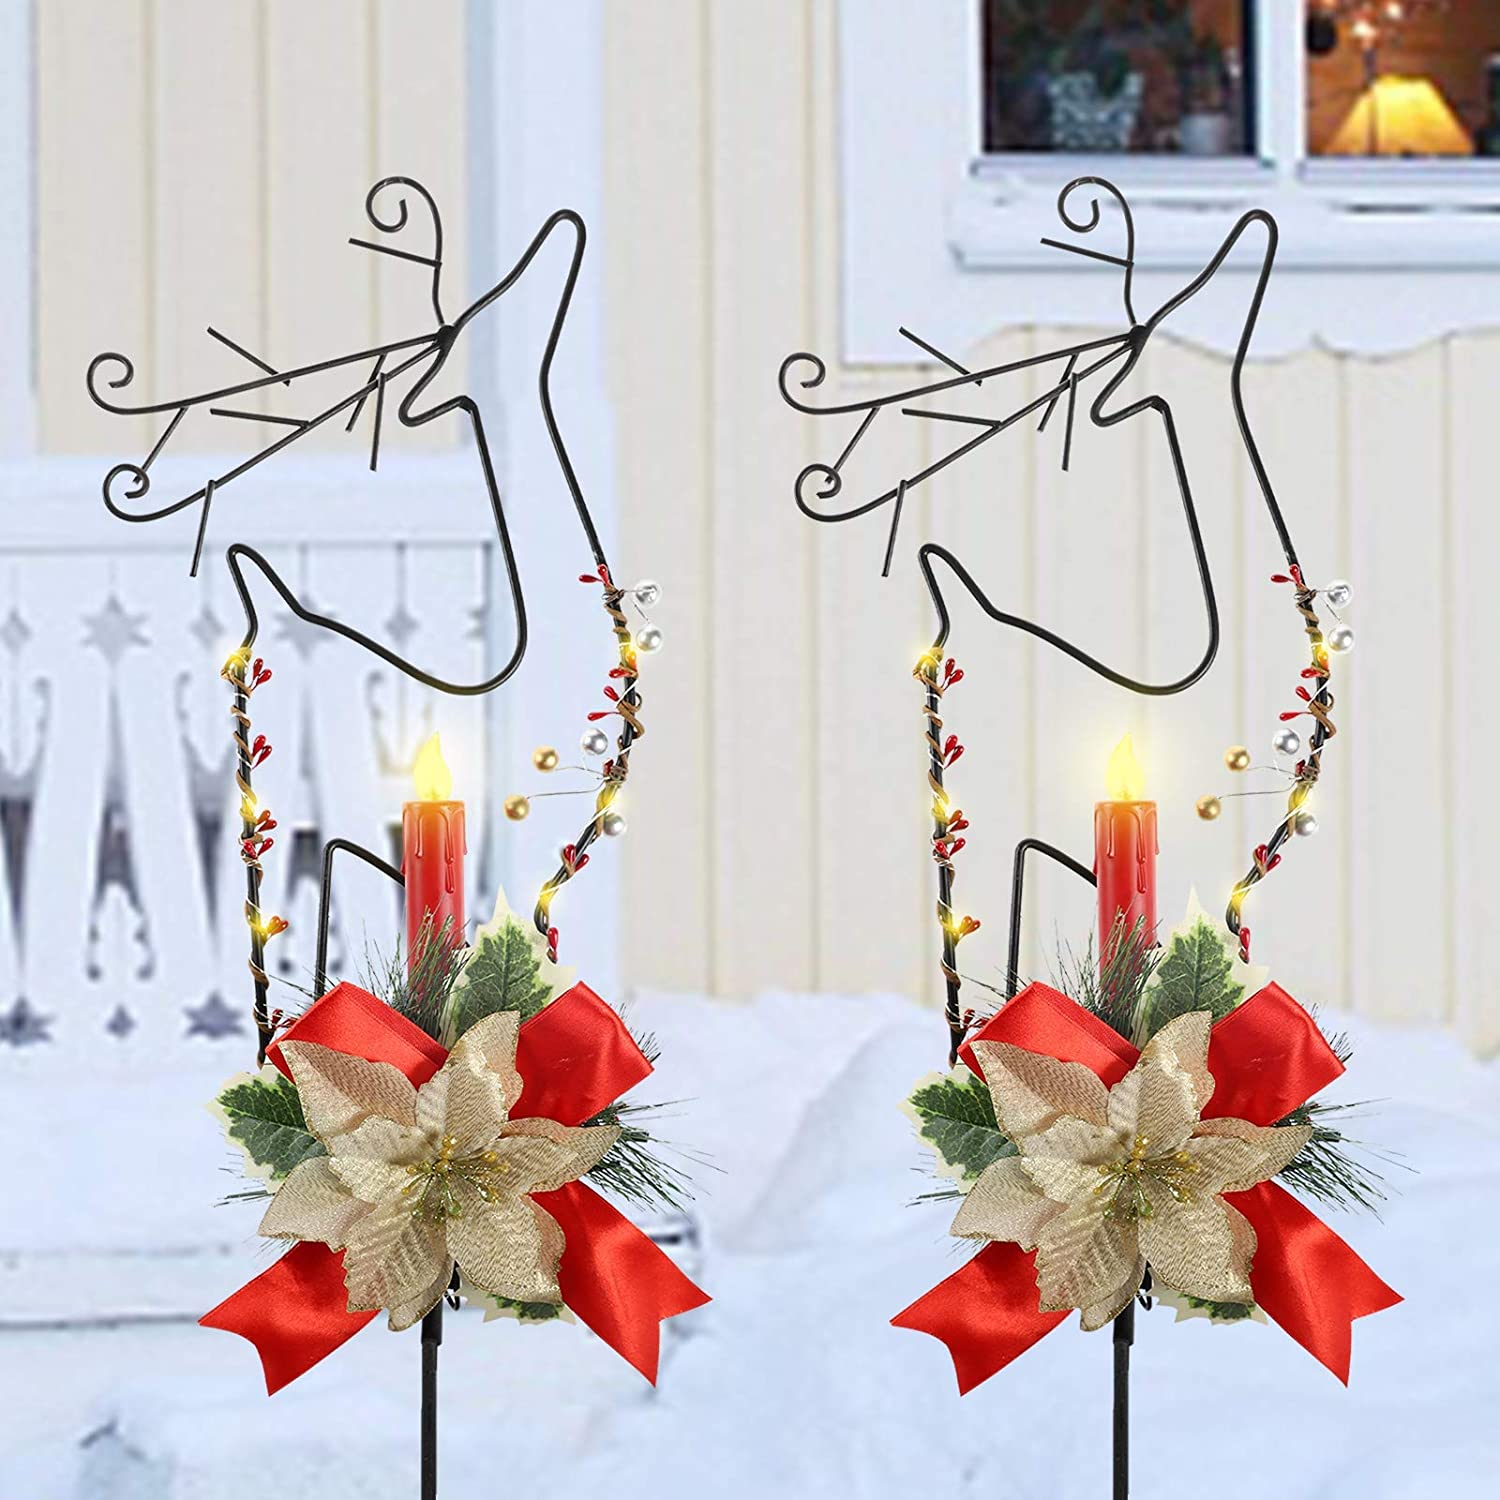 MorTime 2 Pack Christmas Garden Stakes Decor, Metal Reindeer Yard Stake with LED Lights for Home Outdoor Yard Lawn Pathway Walkway Driveway Christmas Holiday Winter Decoration